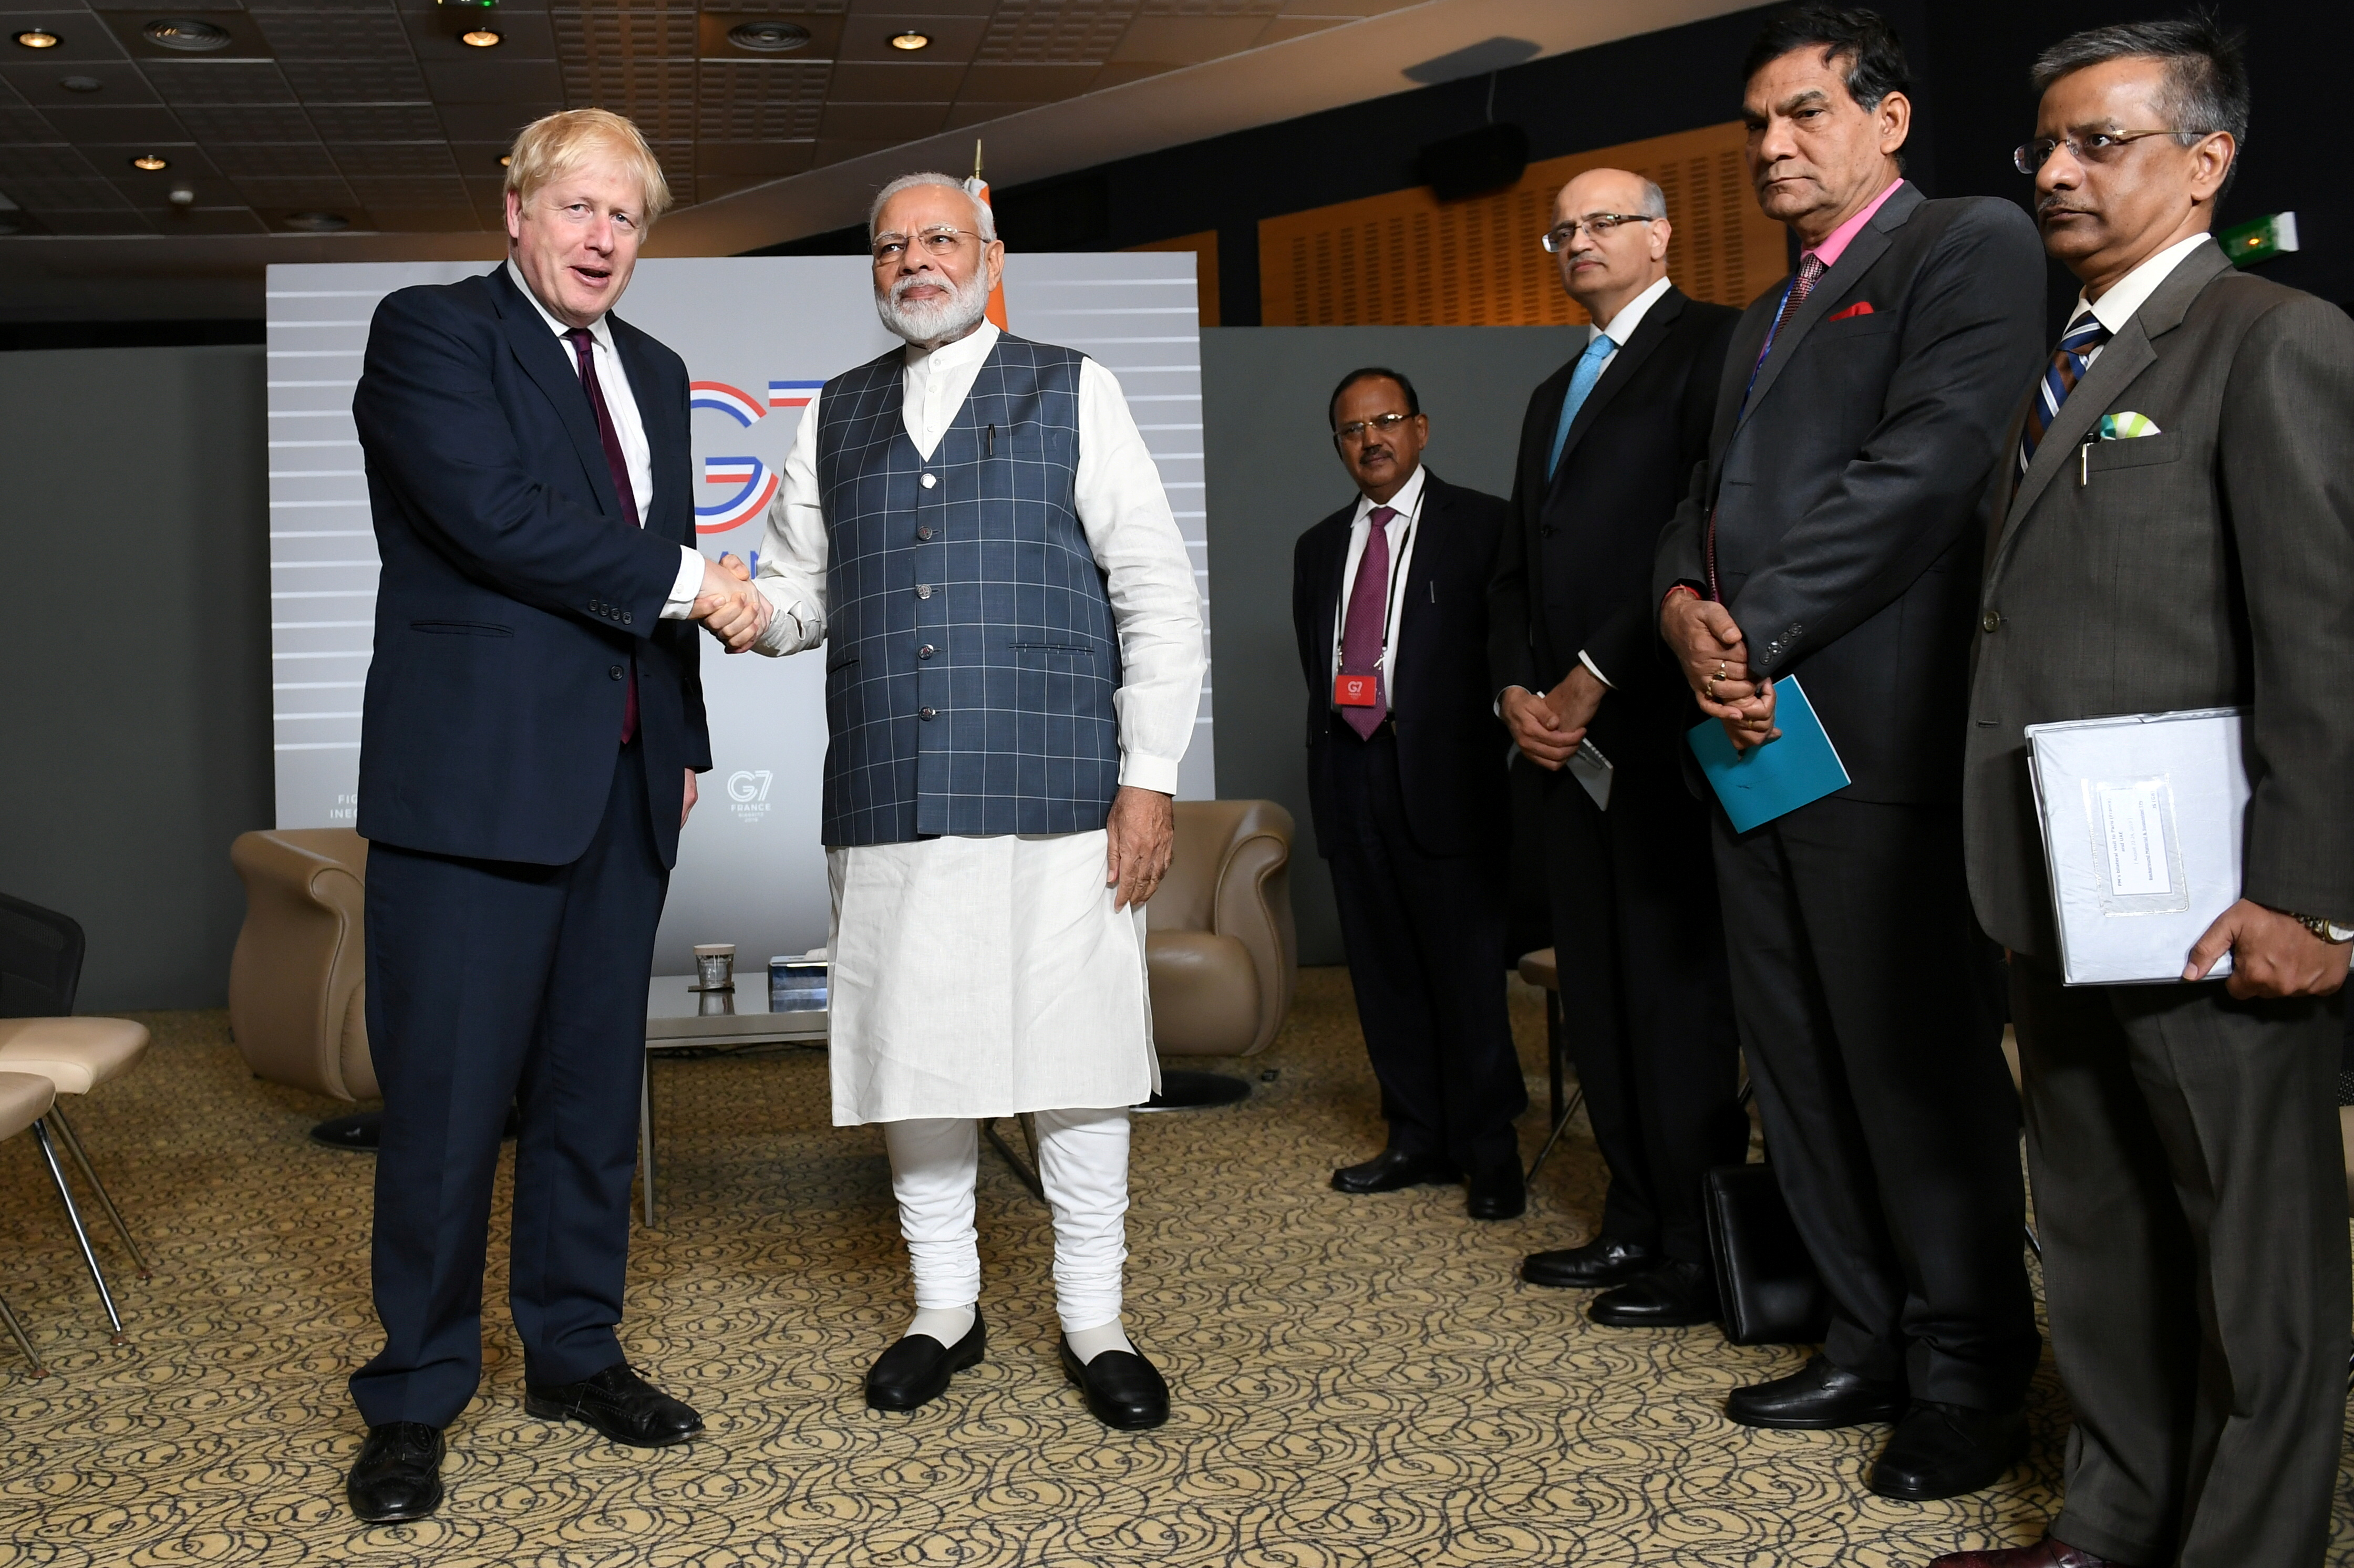 Britain's Prime Minister Boris Johnson meets Indian Prime Minister Narendra Modi at a bilateral meeting during the G7 summit in Biarritz, France August 25, 2019. Stefan Rousseau/Pool via REUTERS/File Photo